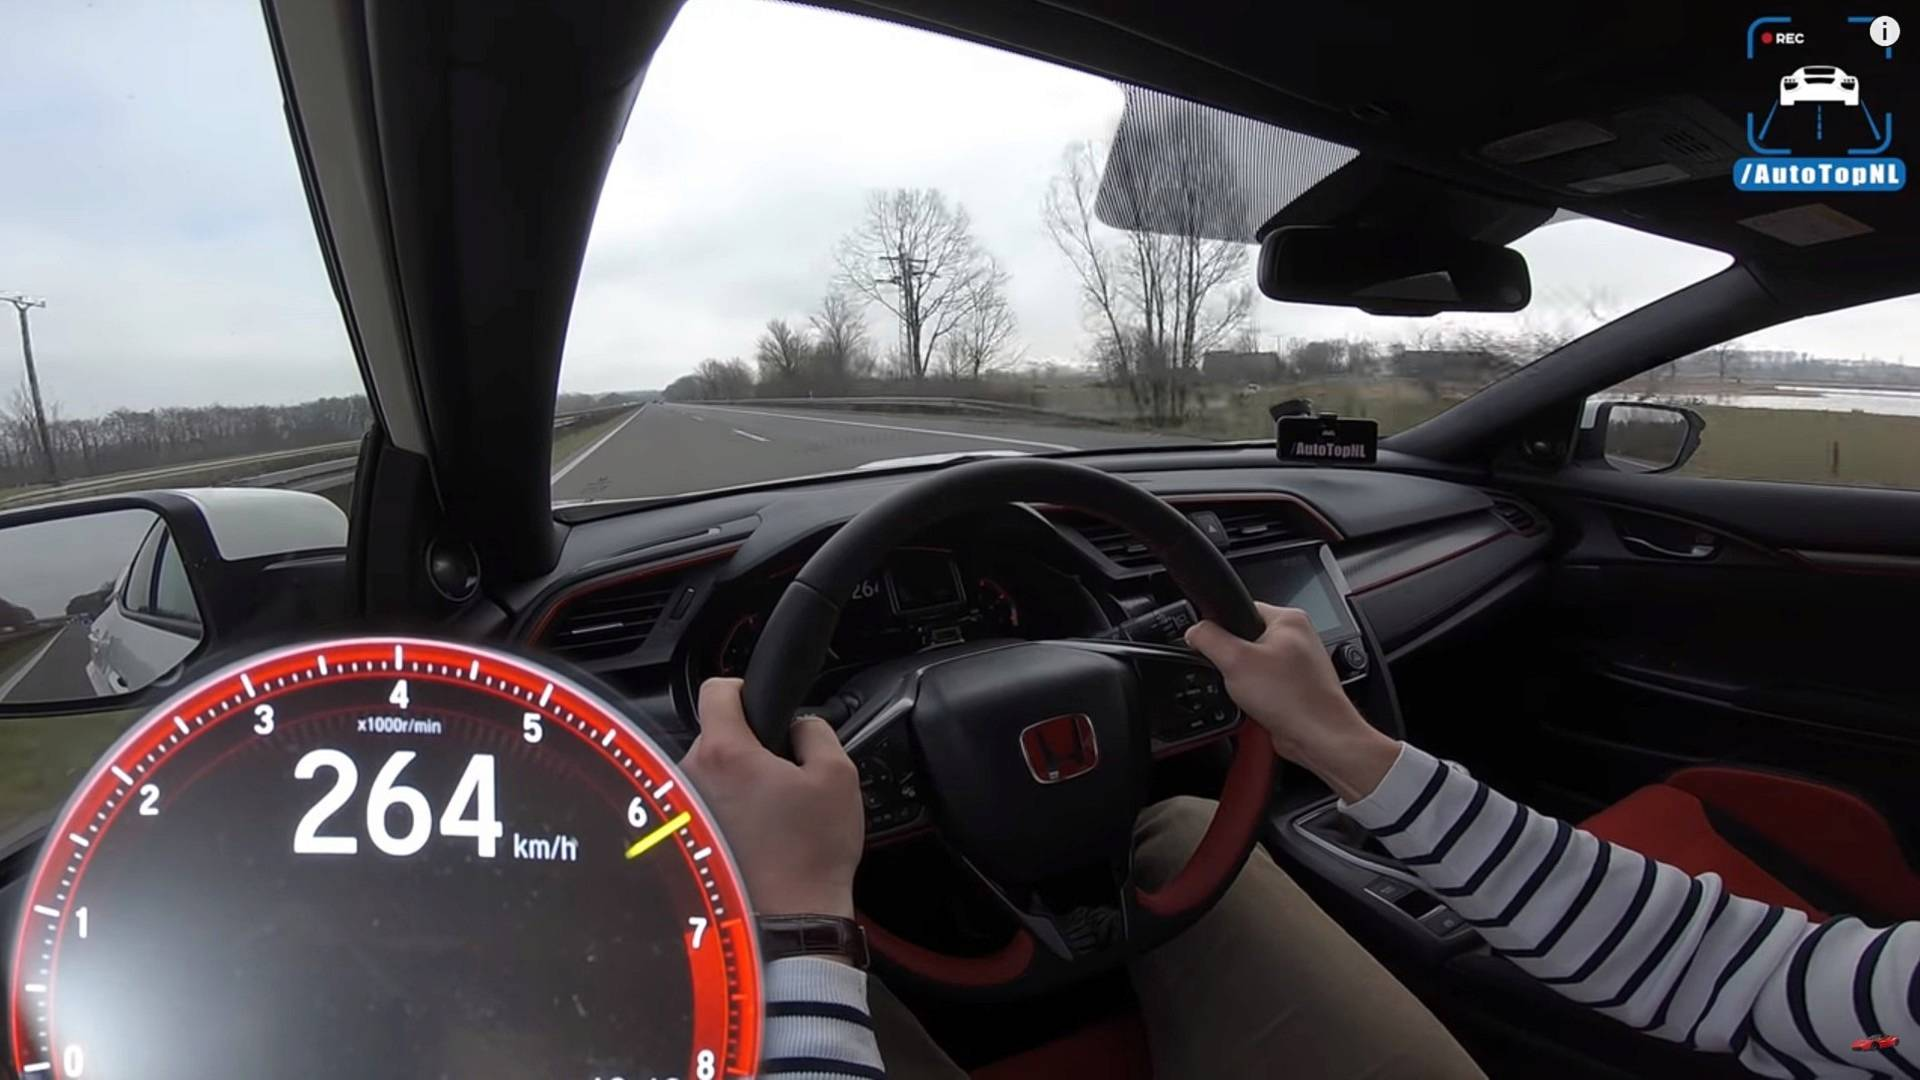 Civic Type R Attempts Top Speed Run, But Traffic Gets In The Way